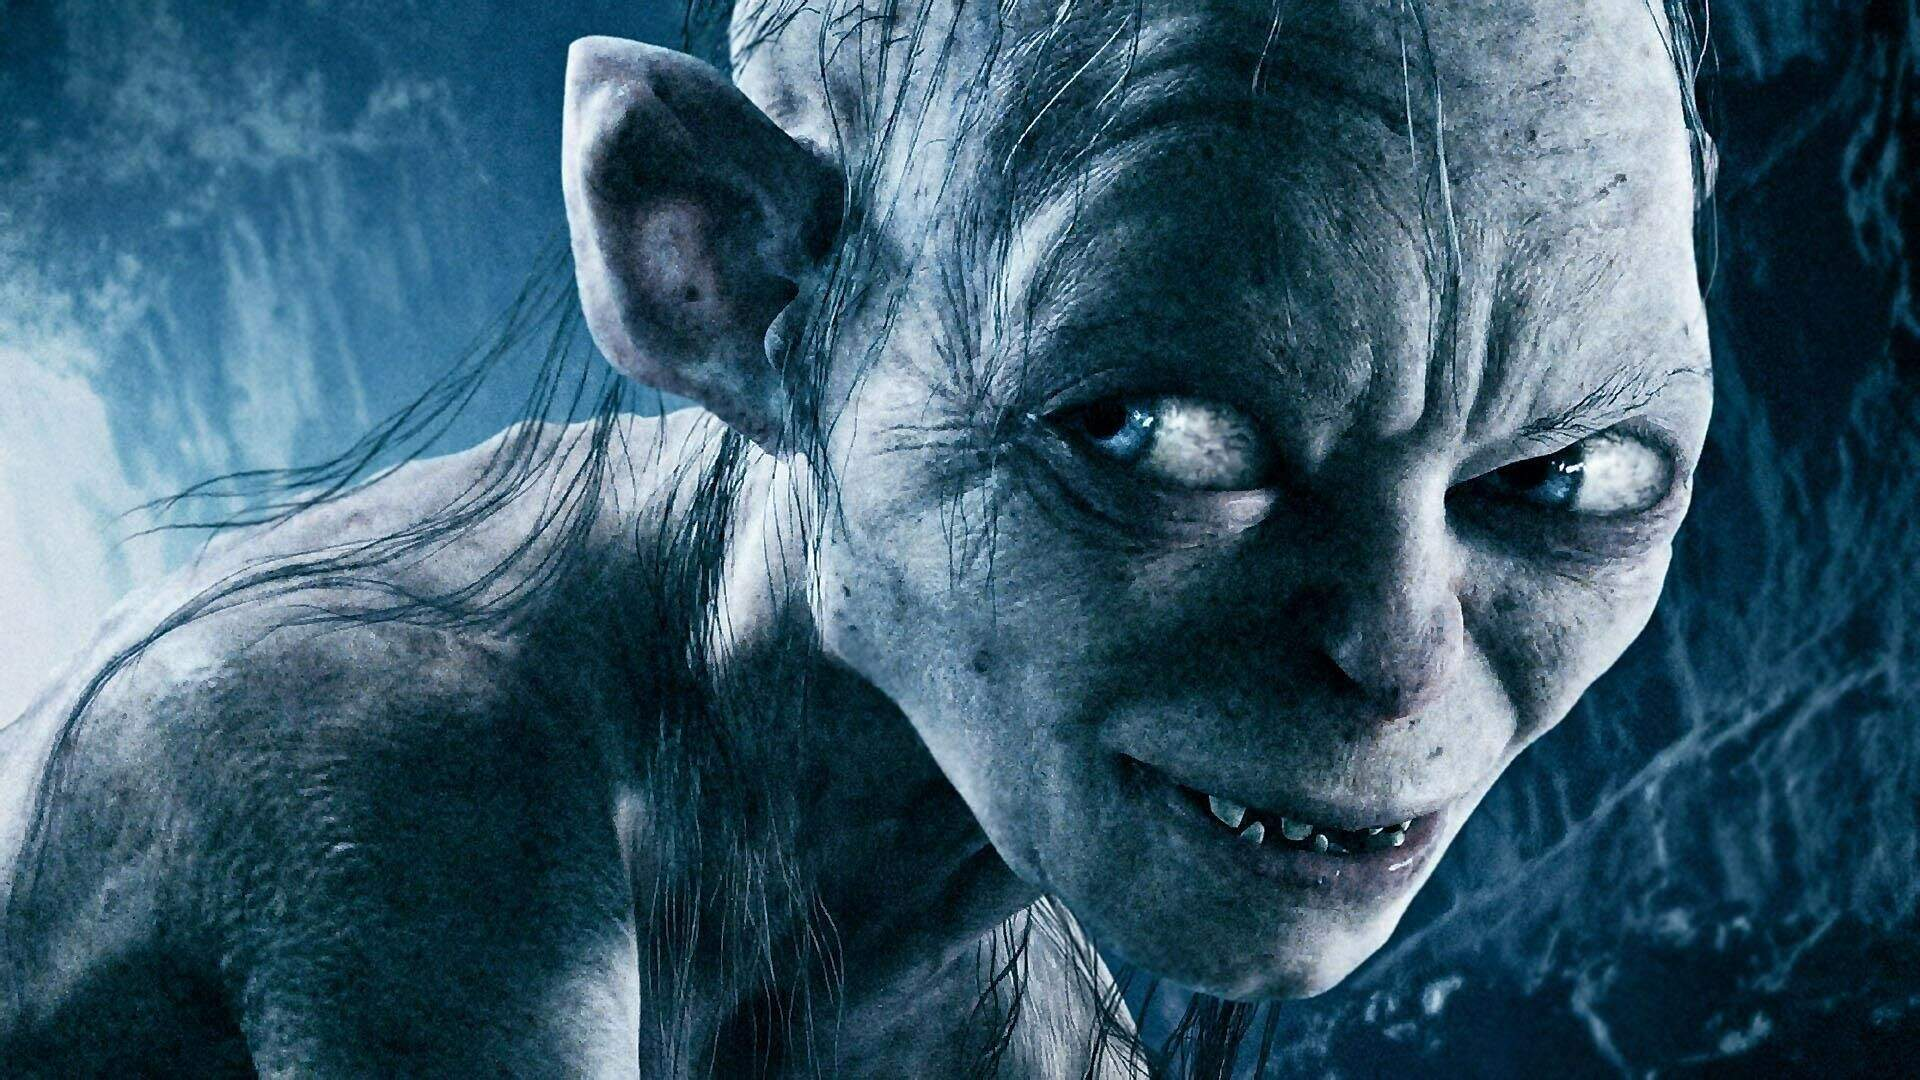 The Lord of the Rings: Gollum Will Feature Ringwraiths and Legolas' Father